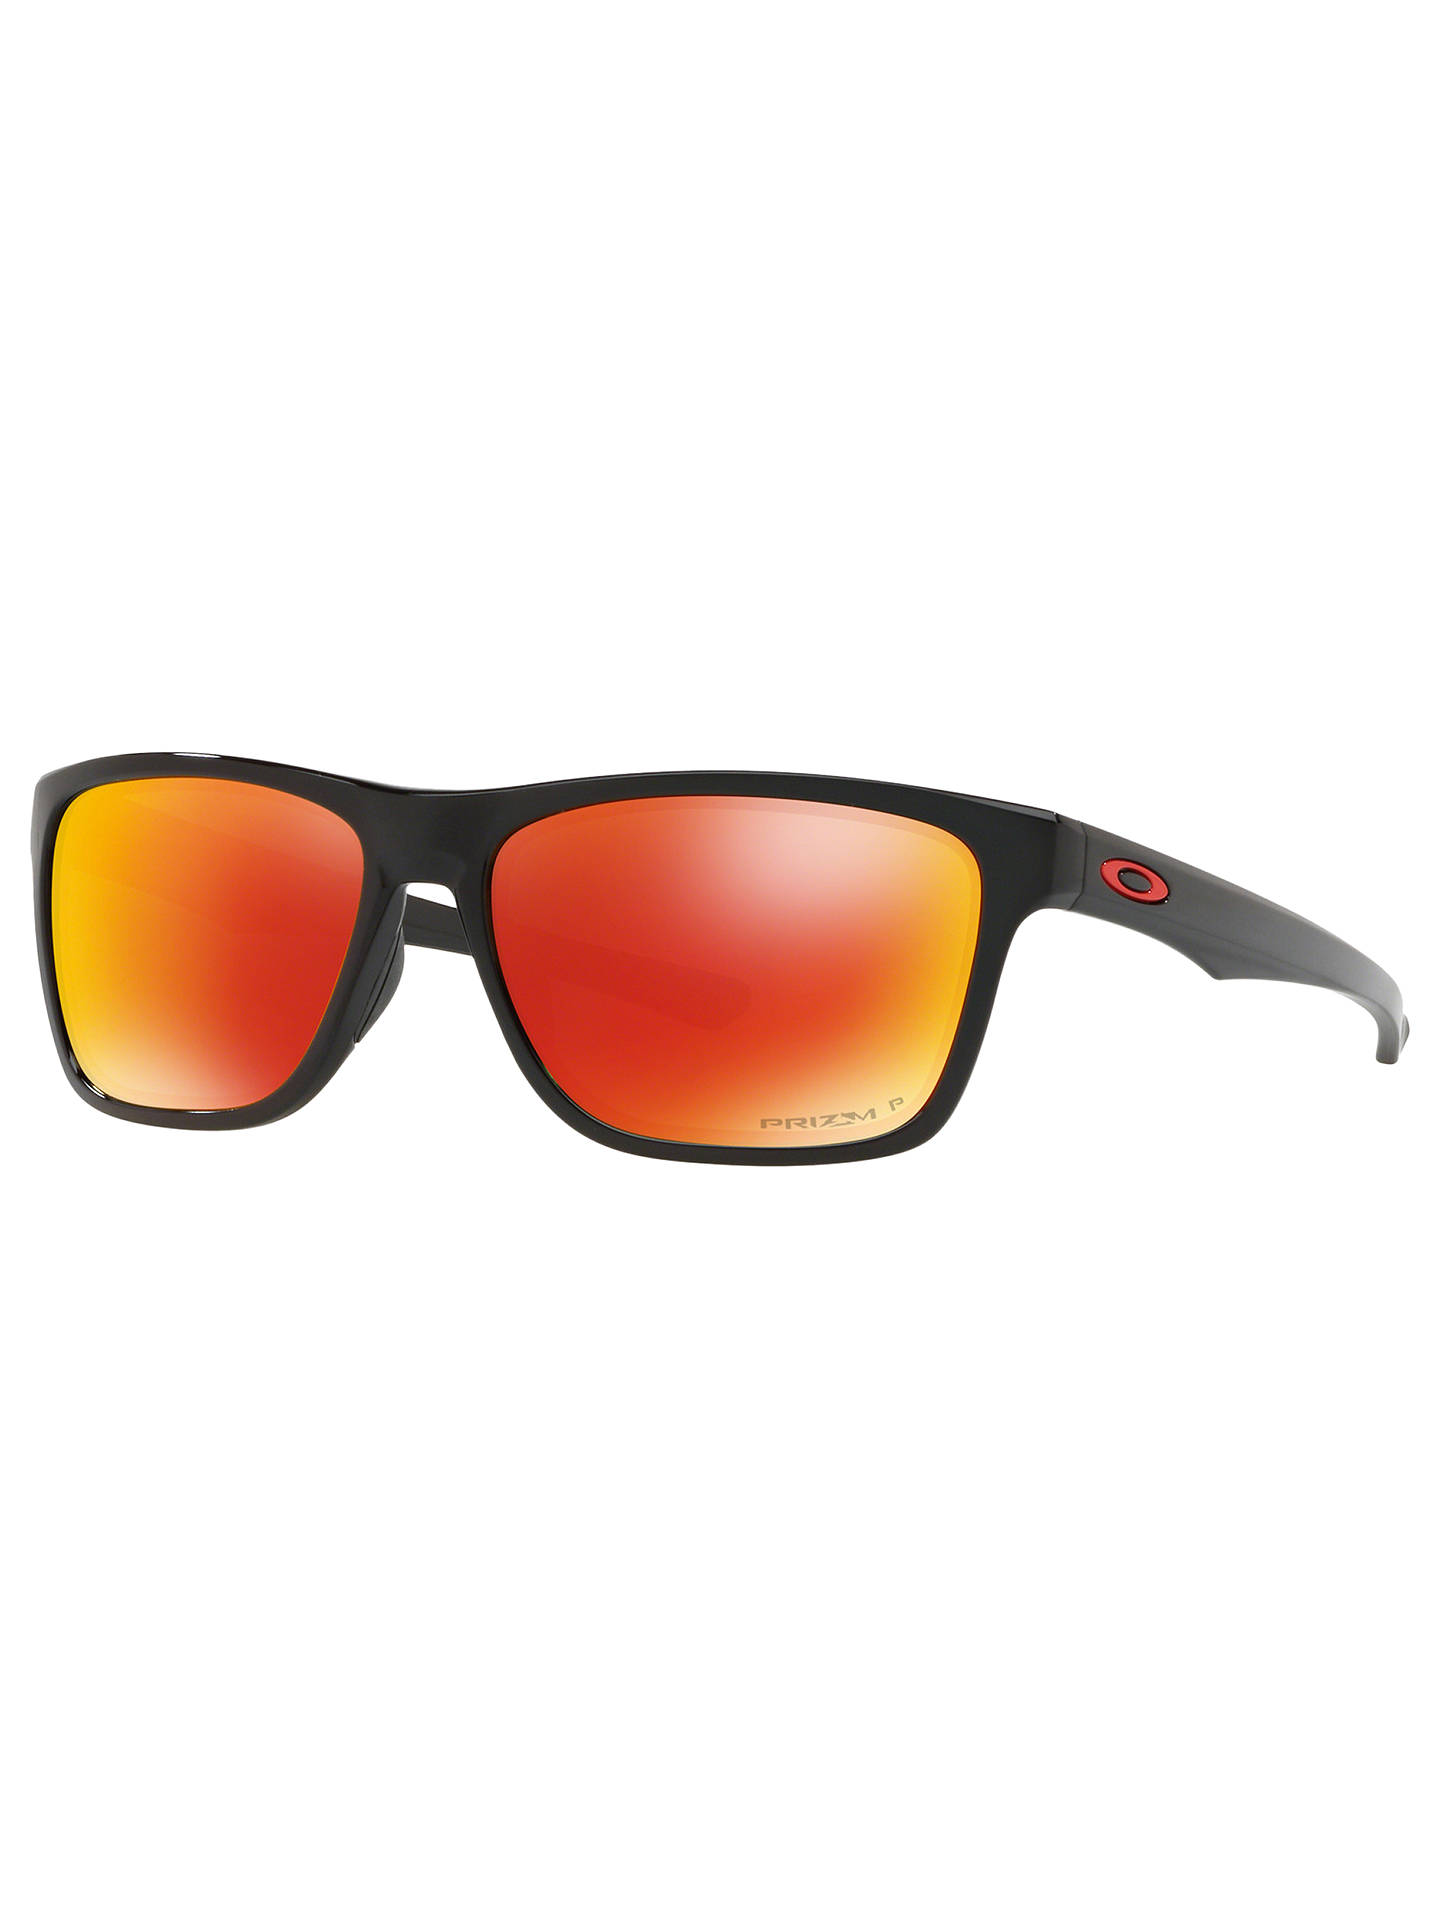 a49e14ceb Buy Oakley OO9334 Men's Holston Polarised Square Sunglasses, Black/Mirror  Orange Online at johnlewis ...